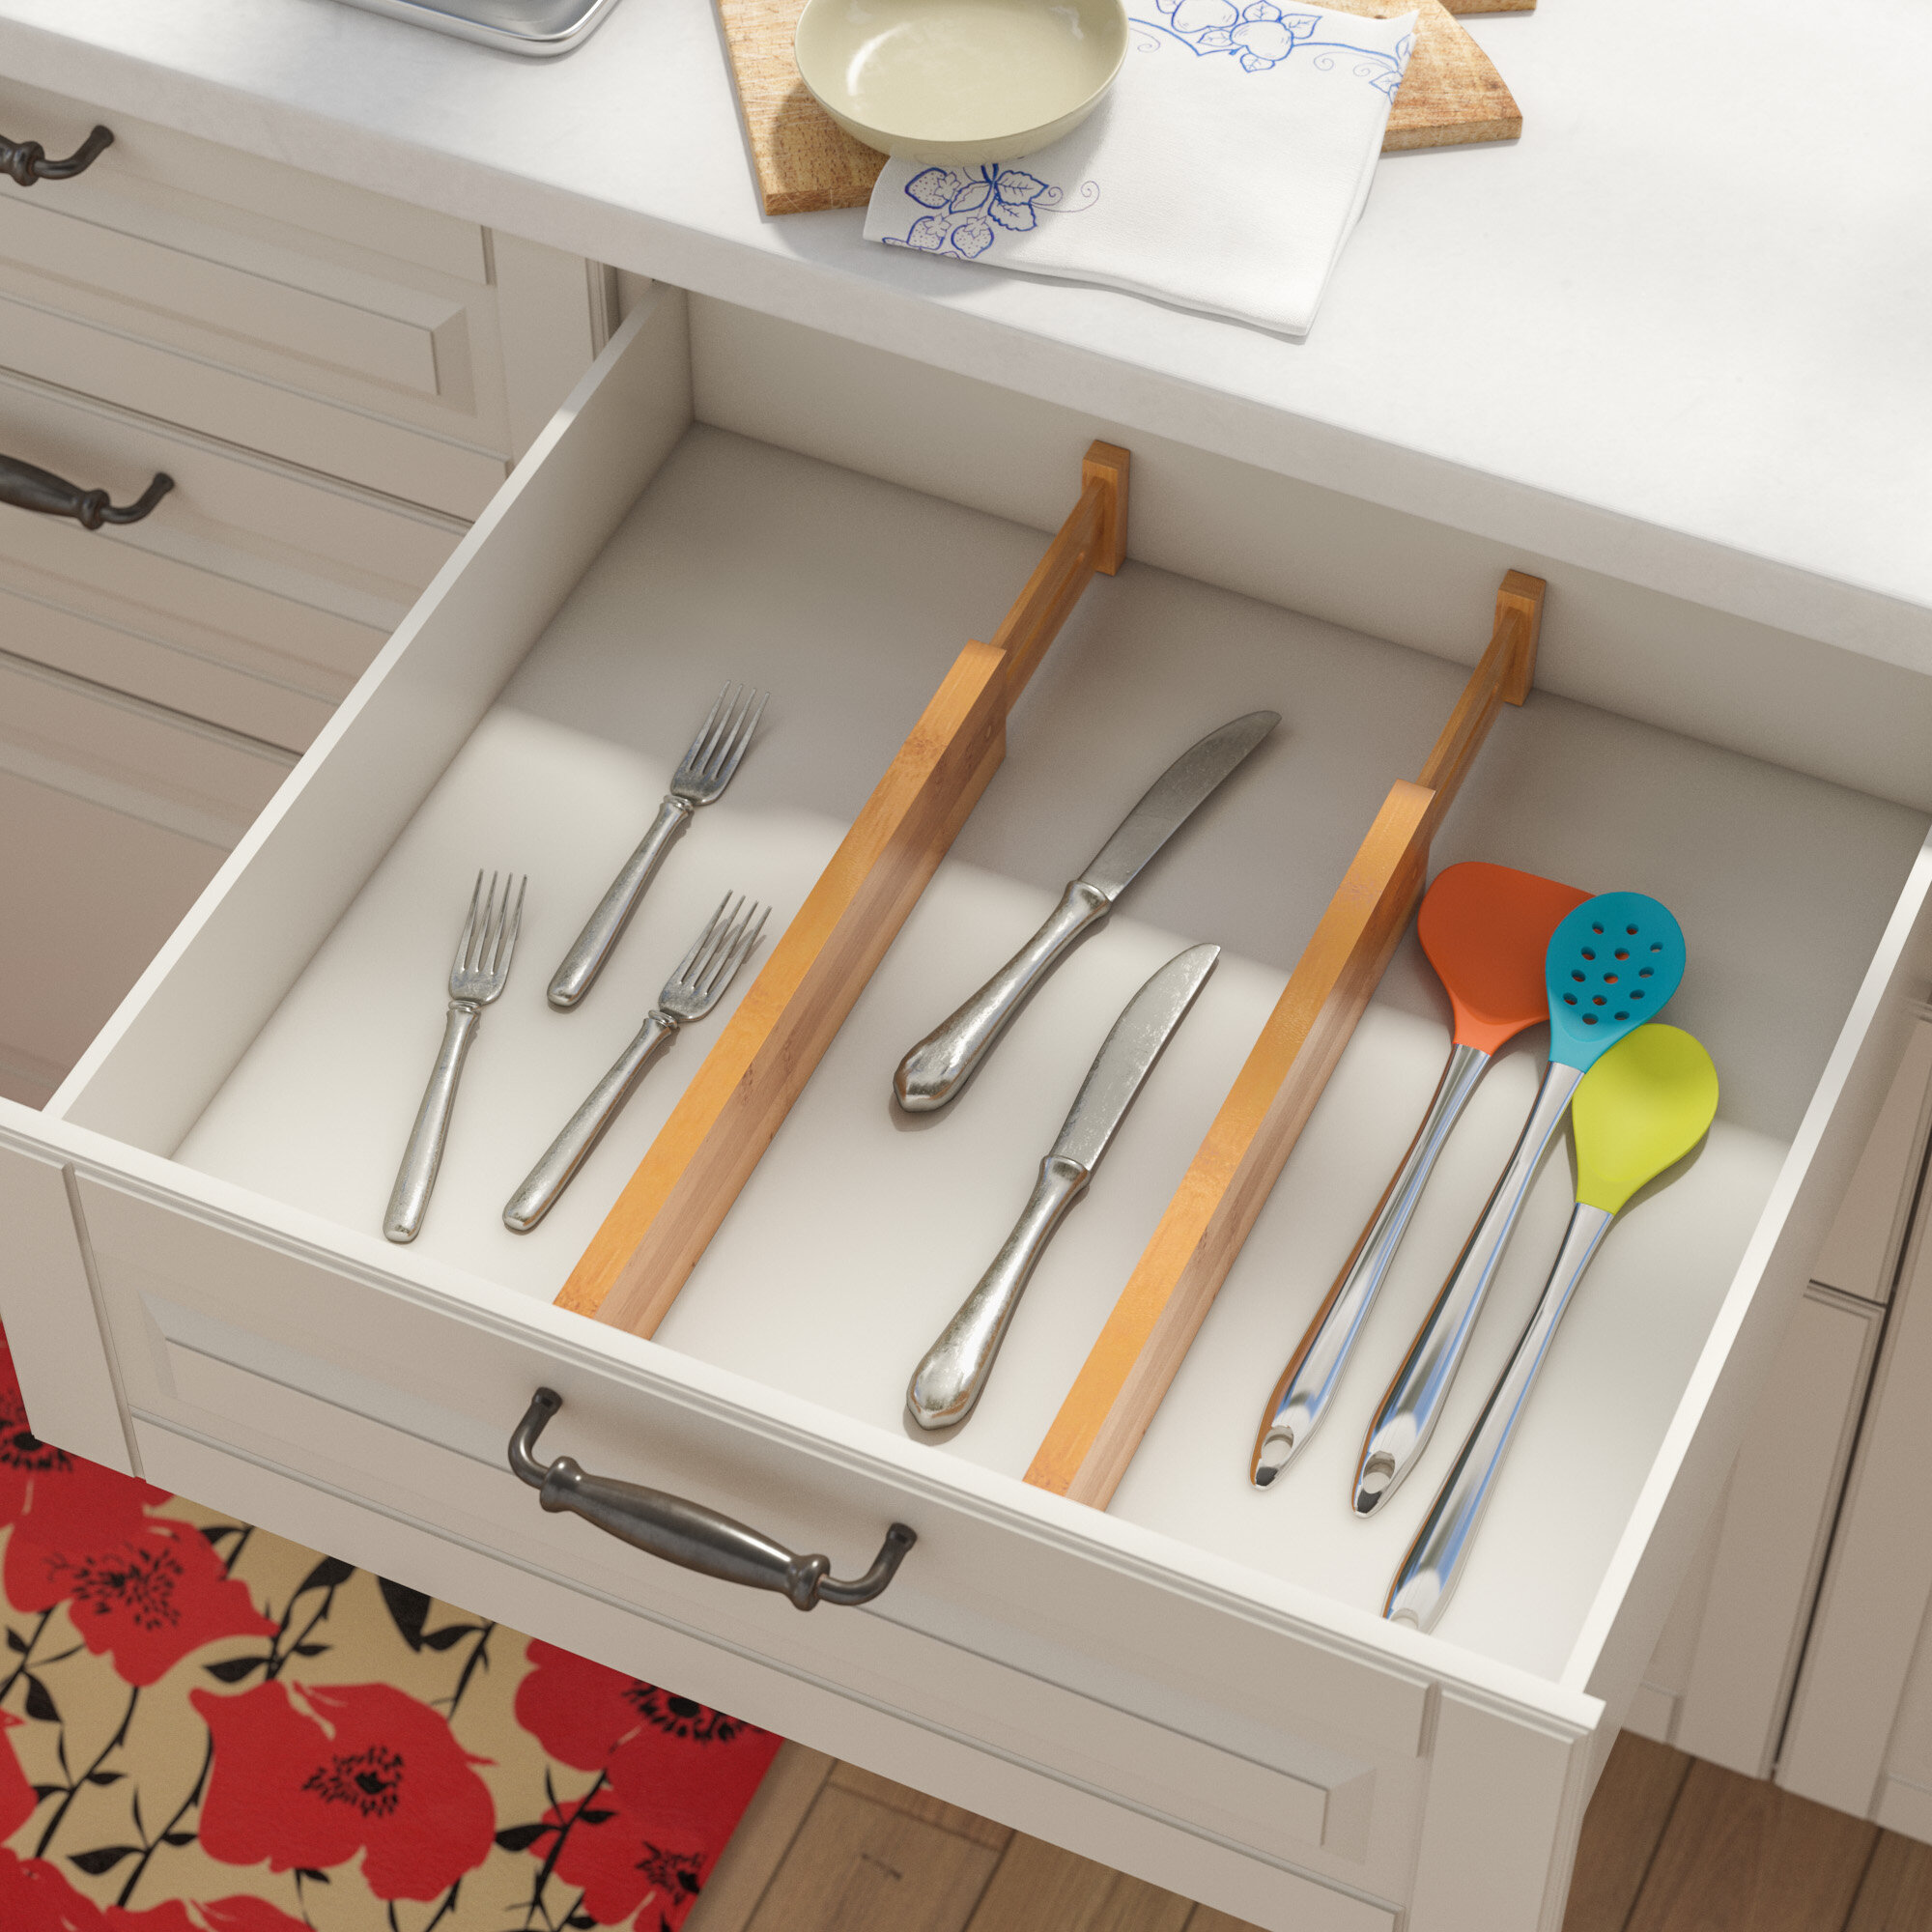 organizers wood brown closet table clothe and colorful dot for baby dresser carpet clothes sheet full kitchen size cabinet drawers white changing cupboards organizer tips of nursery minimalist drawer dividers plastic solid polka